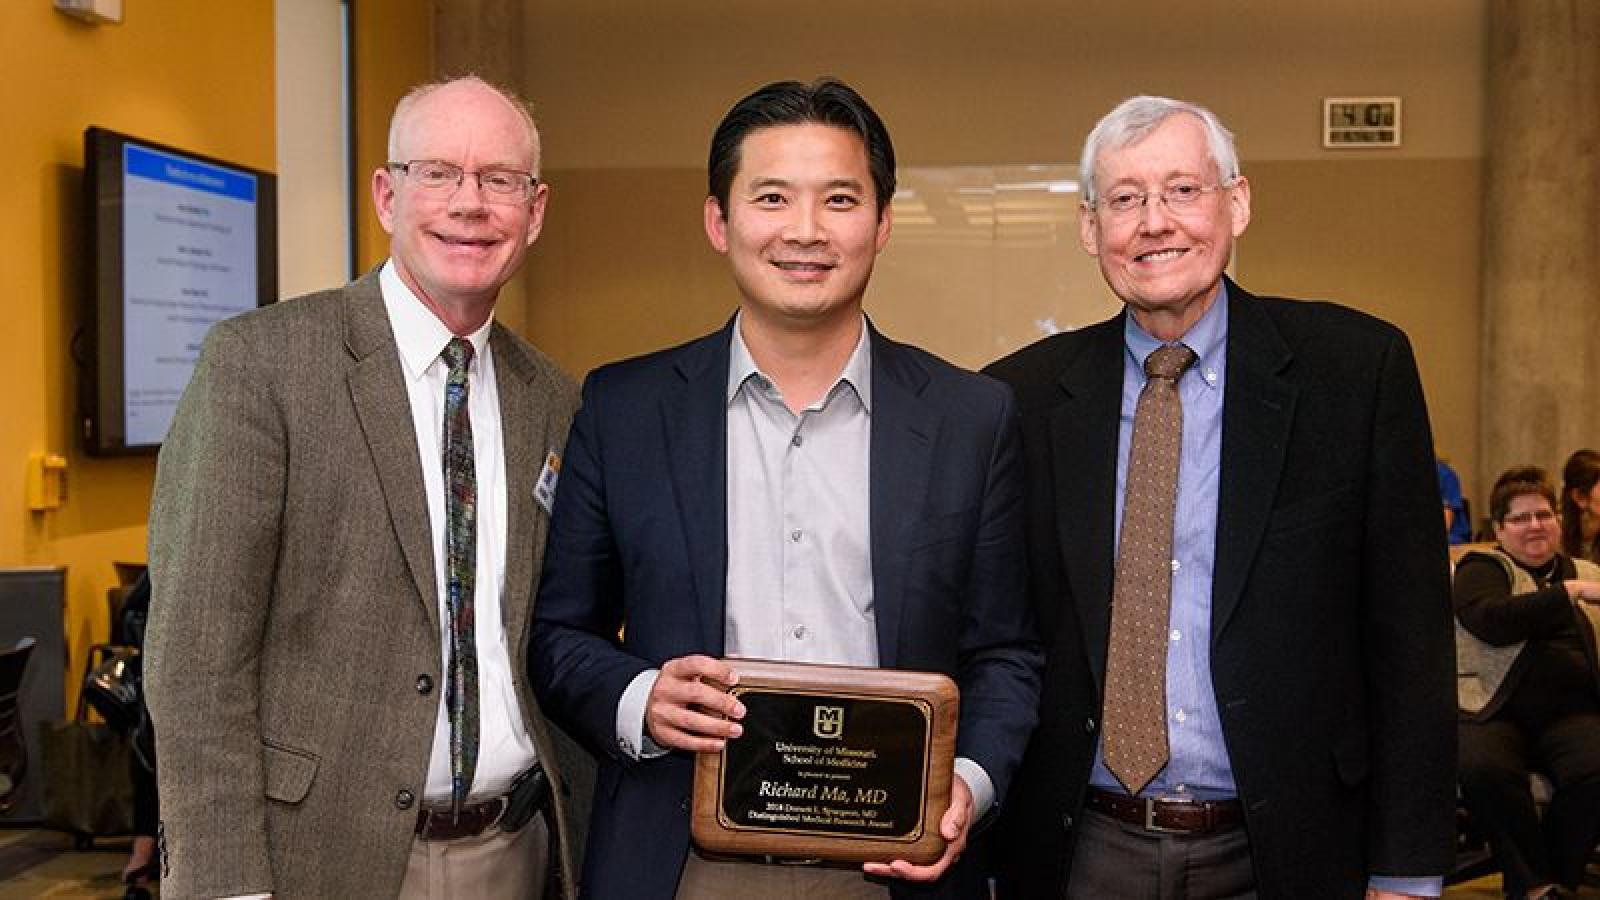 Dr. Ma receives Spurgeon Award at Health Sciences Research Day